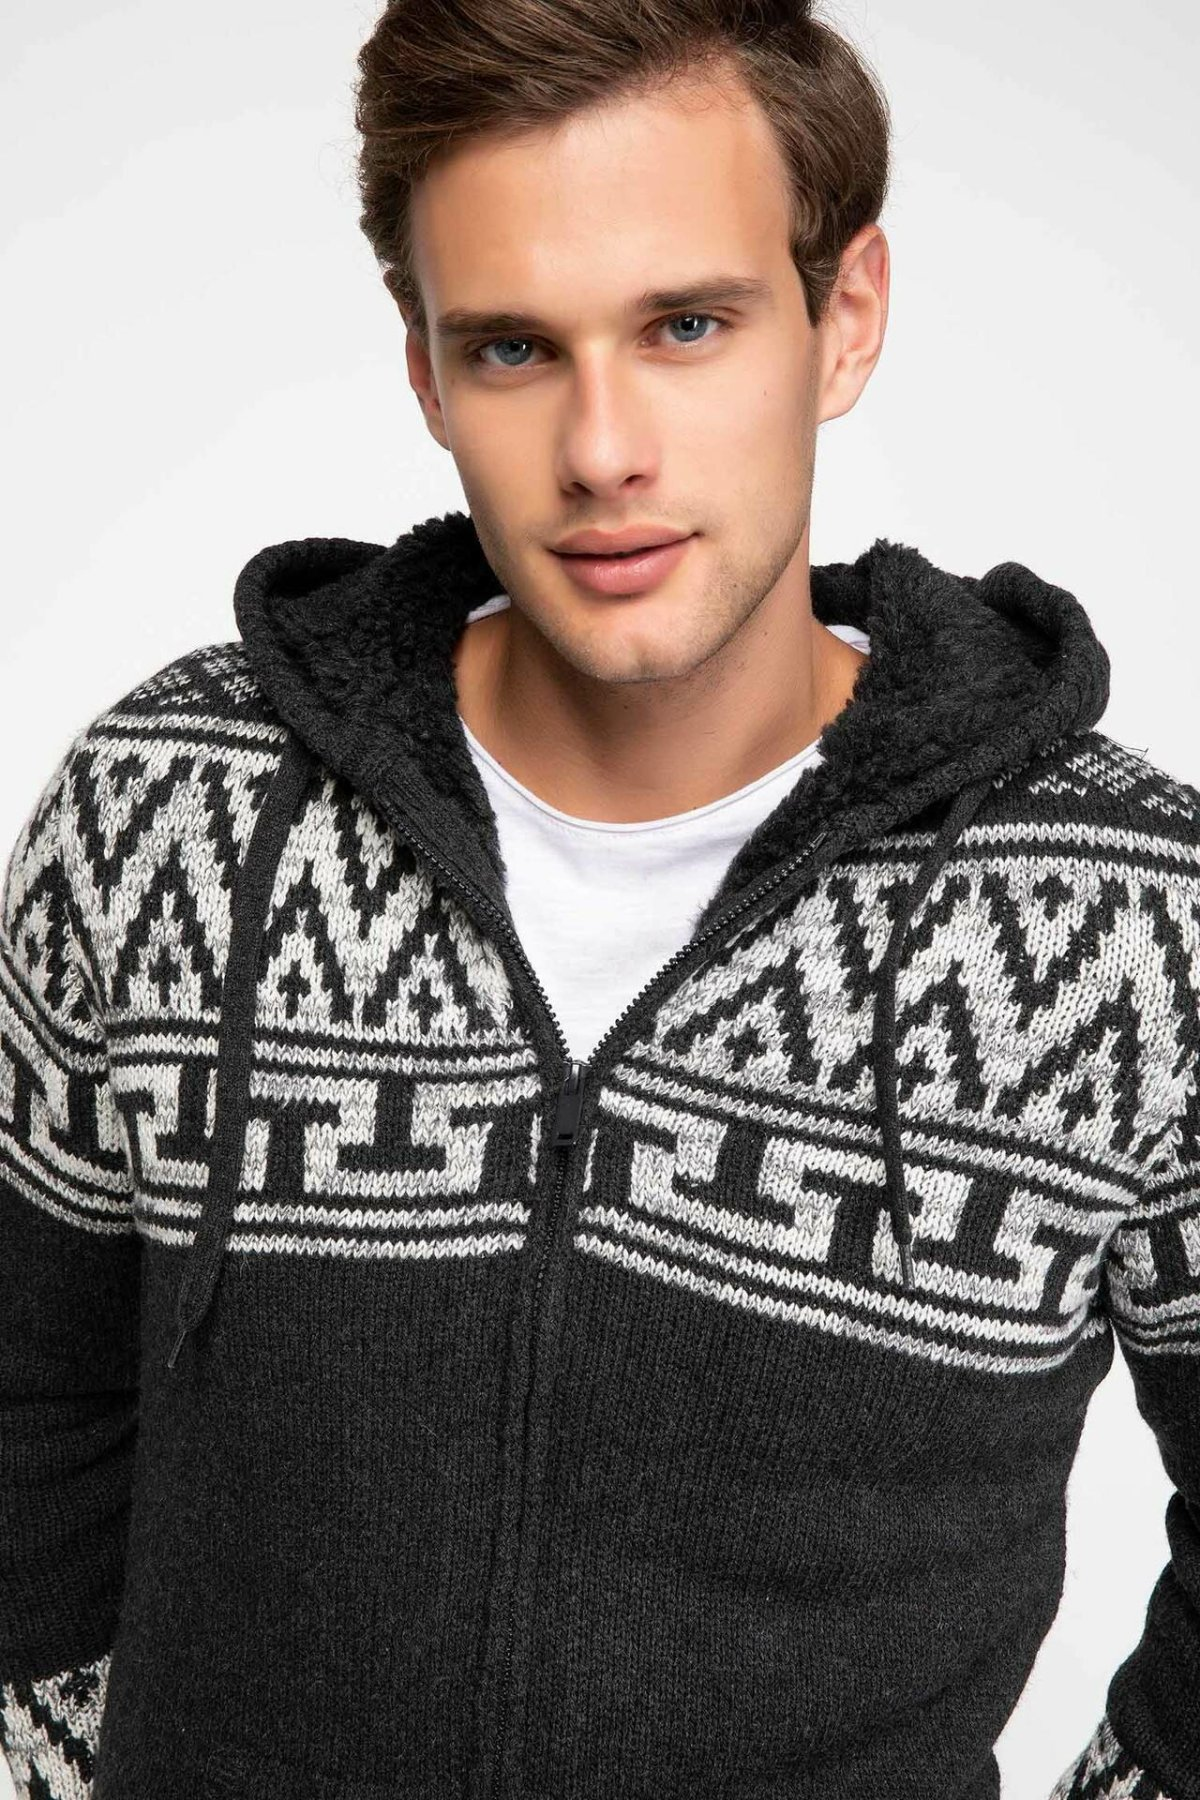 DeFacto Man Knitted Sweater Cardigan /Men Winter Thick Hooded Long Sleeve Sweaters Male Top Coats Bolero-J3748AZ18WN